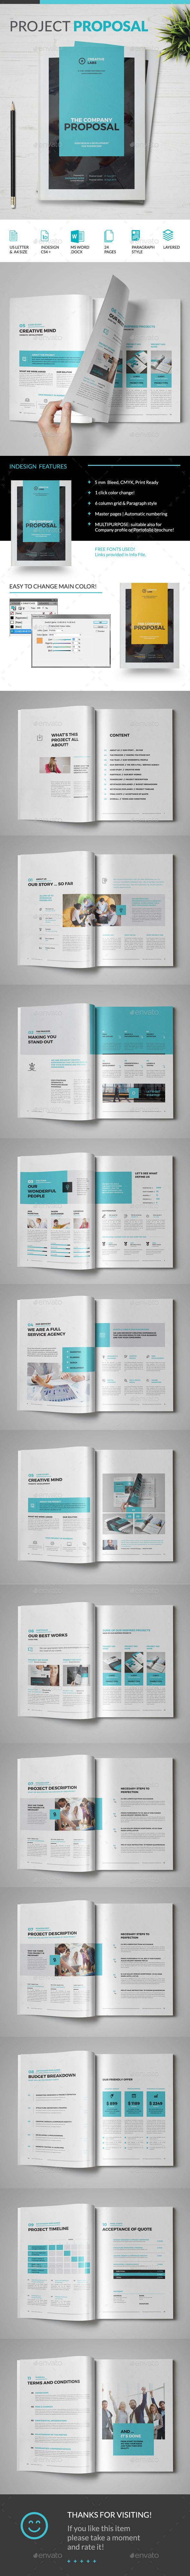 Proposal Template InDesign INDD 120 best CORPORATE